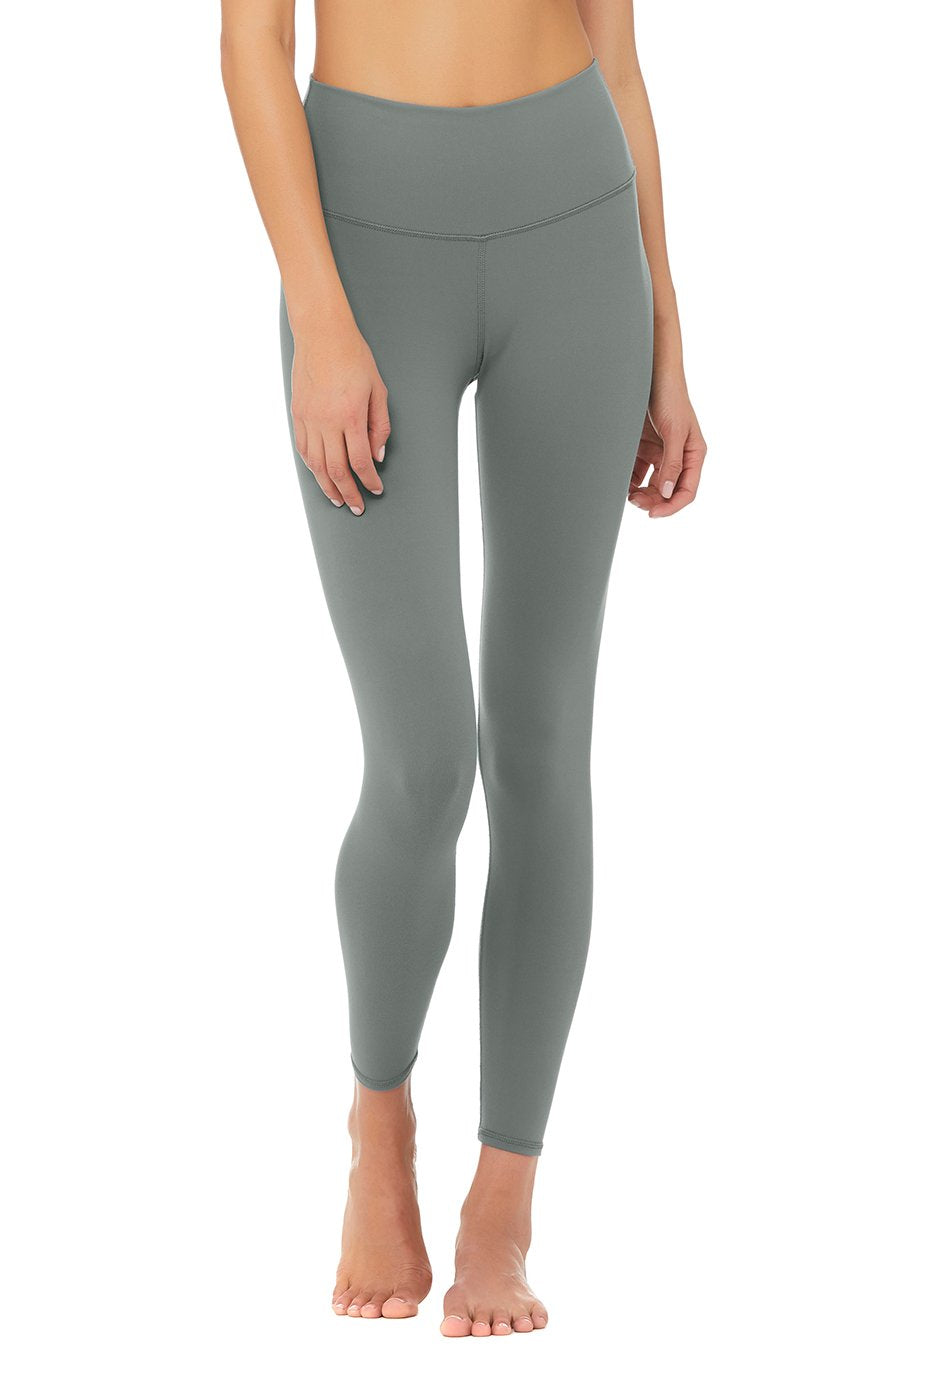 Alo Yoga 7/8 High-Waist Airbrush Legging - Concrete